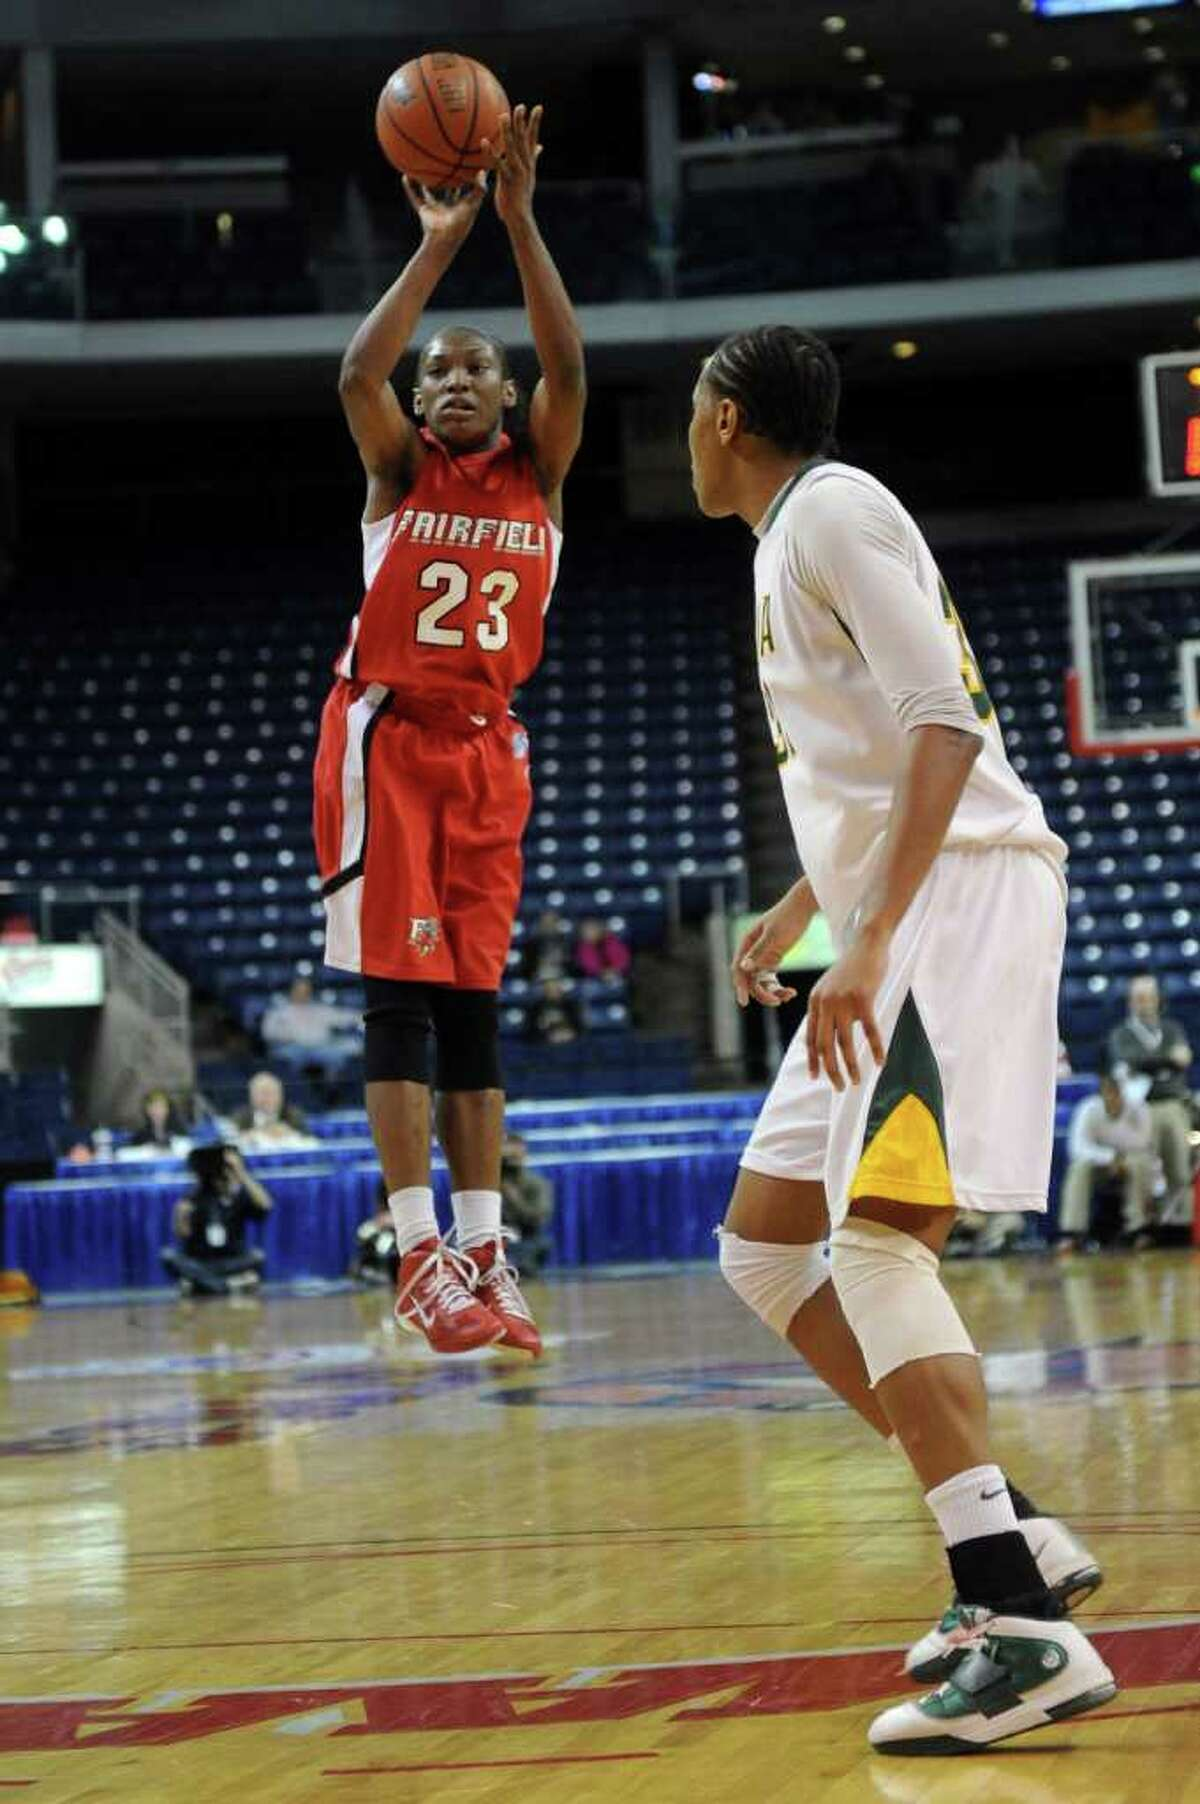 Fairfield's Taryn Johnson takes a shot during Friday's MAAC Tournament quarterfinal game at Webster Bank Arena at Harbor Yard on March 4, 2011.